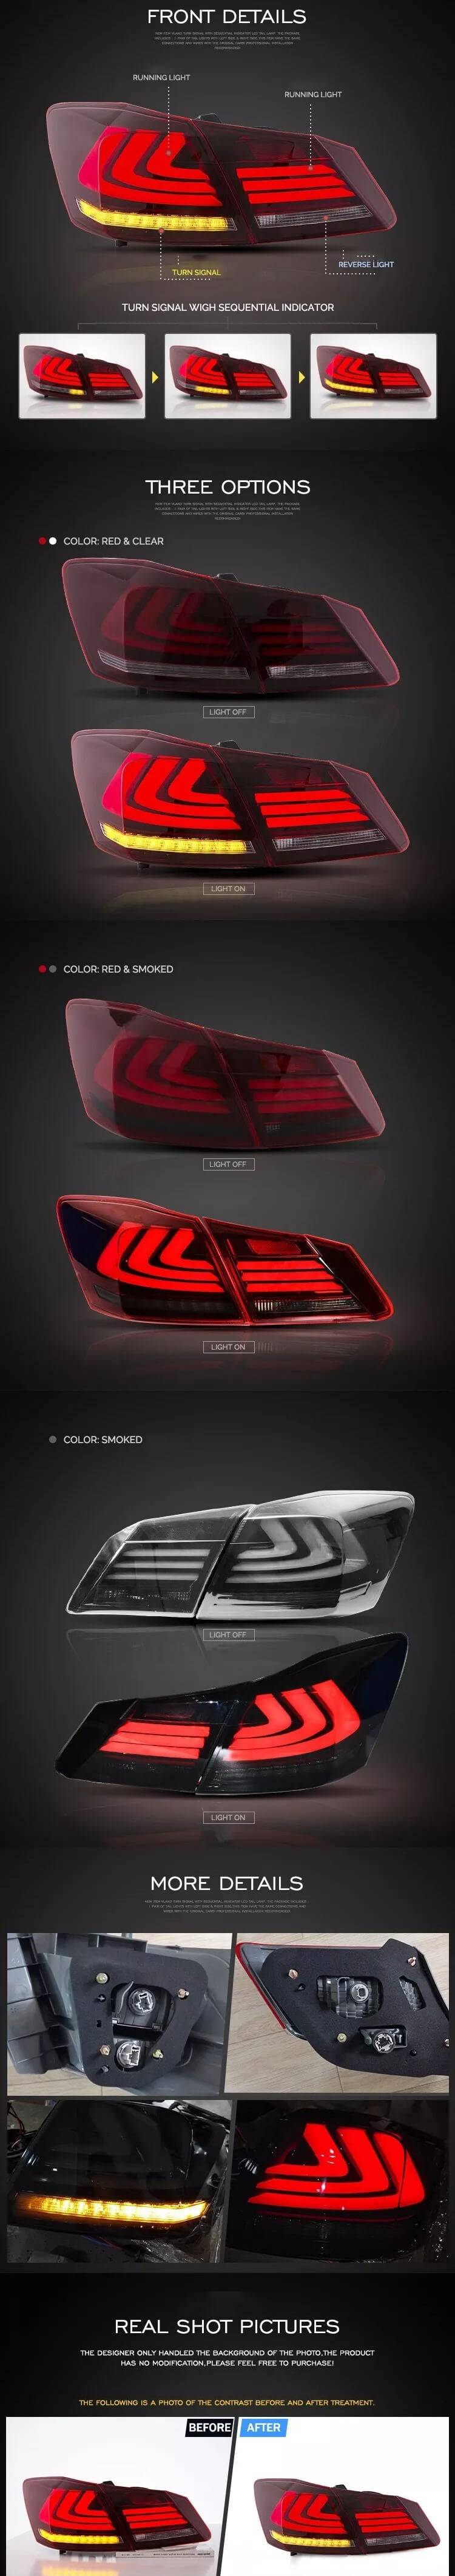 NINTE taillights for Honda Accord 2013-2015 detail